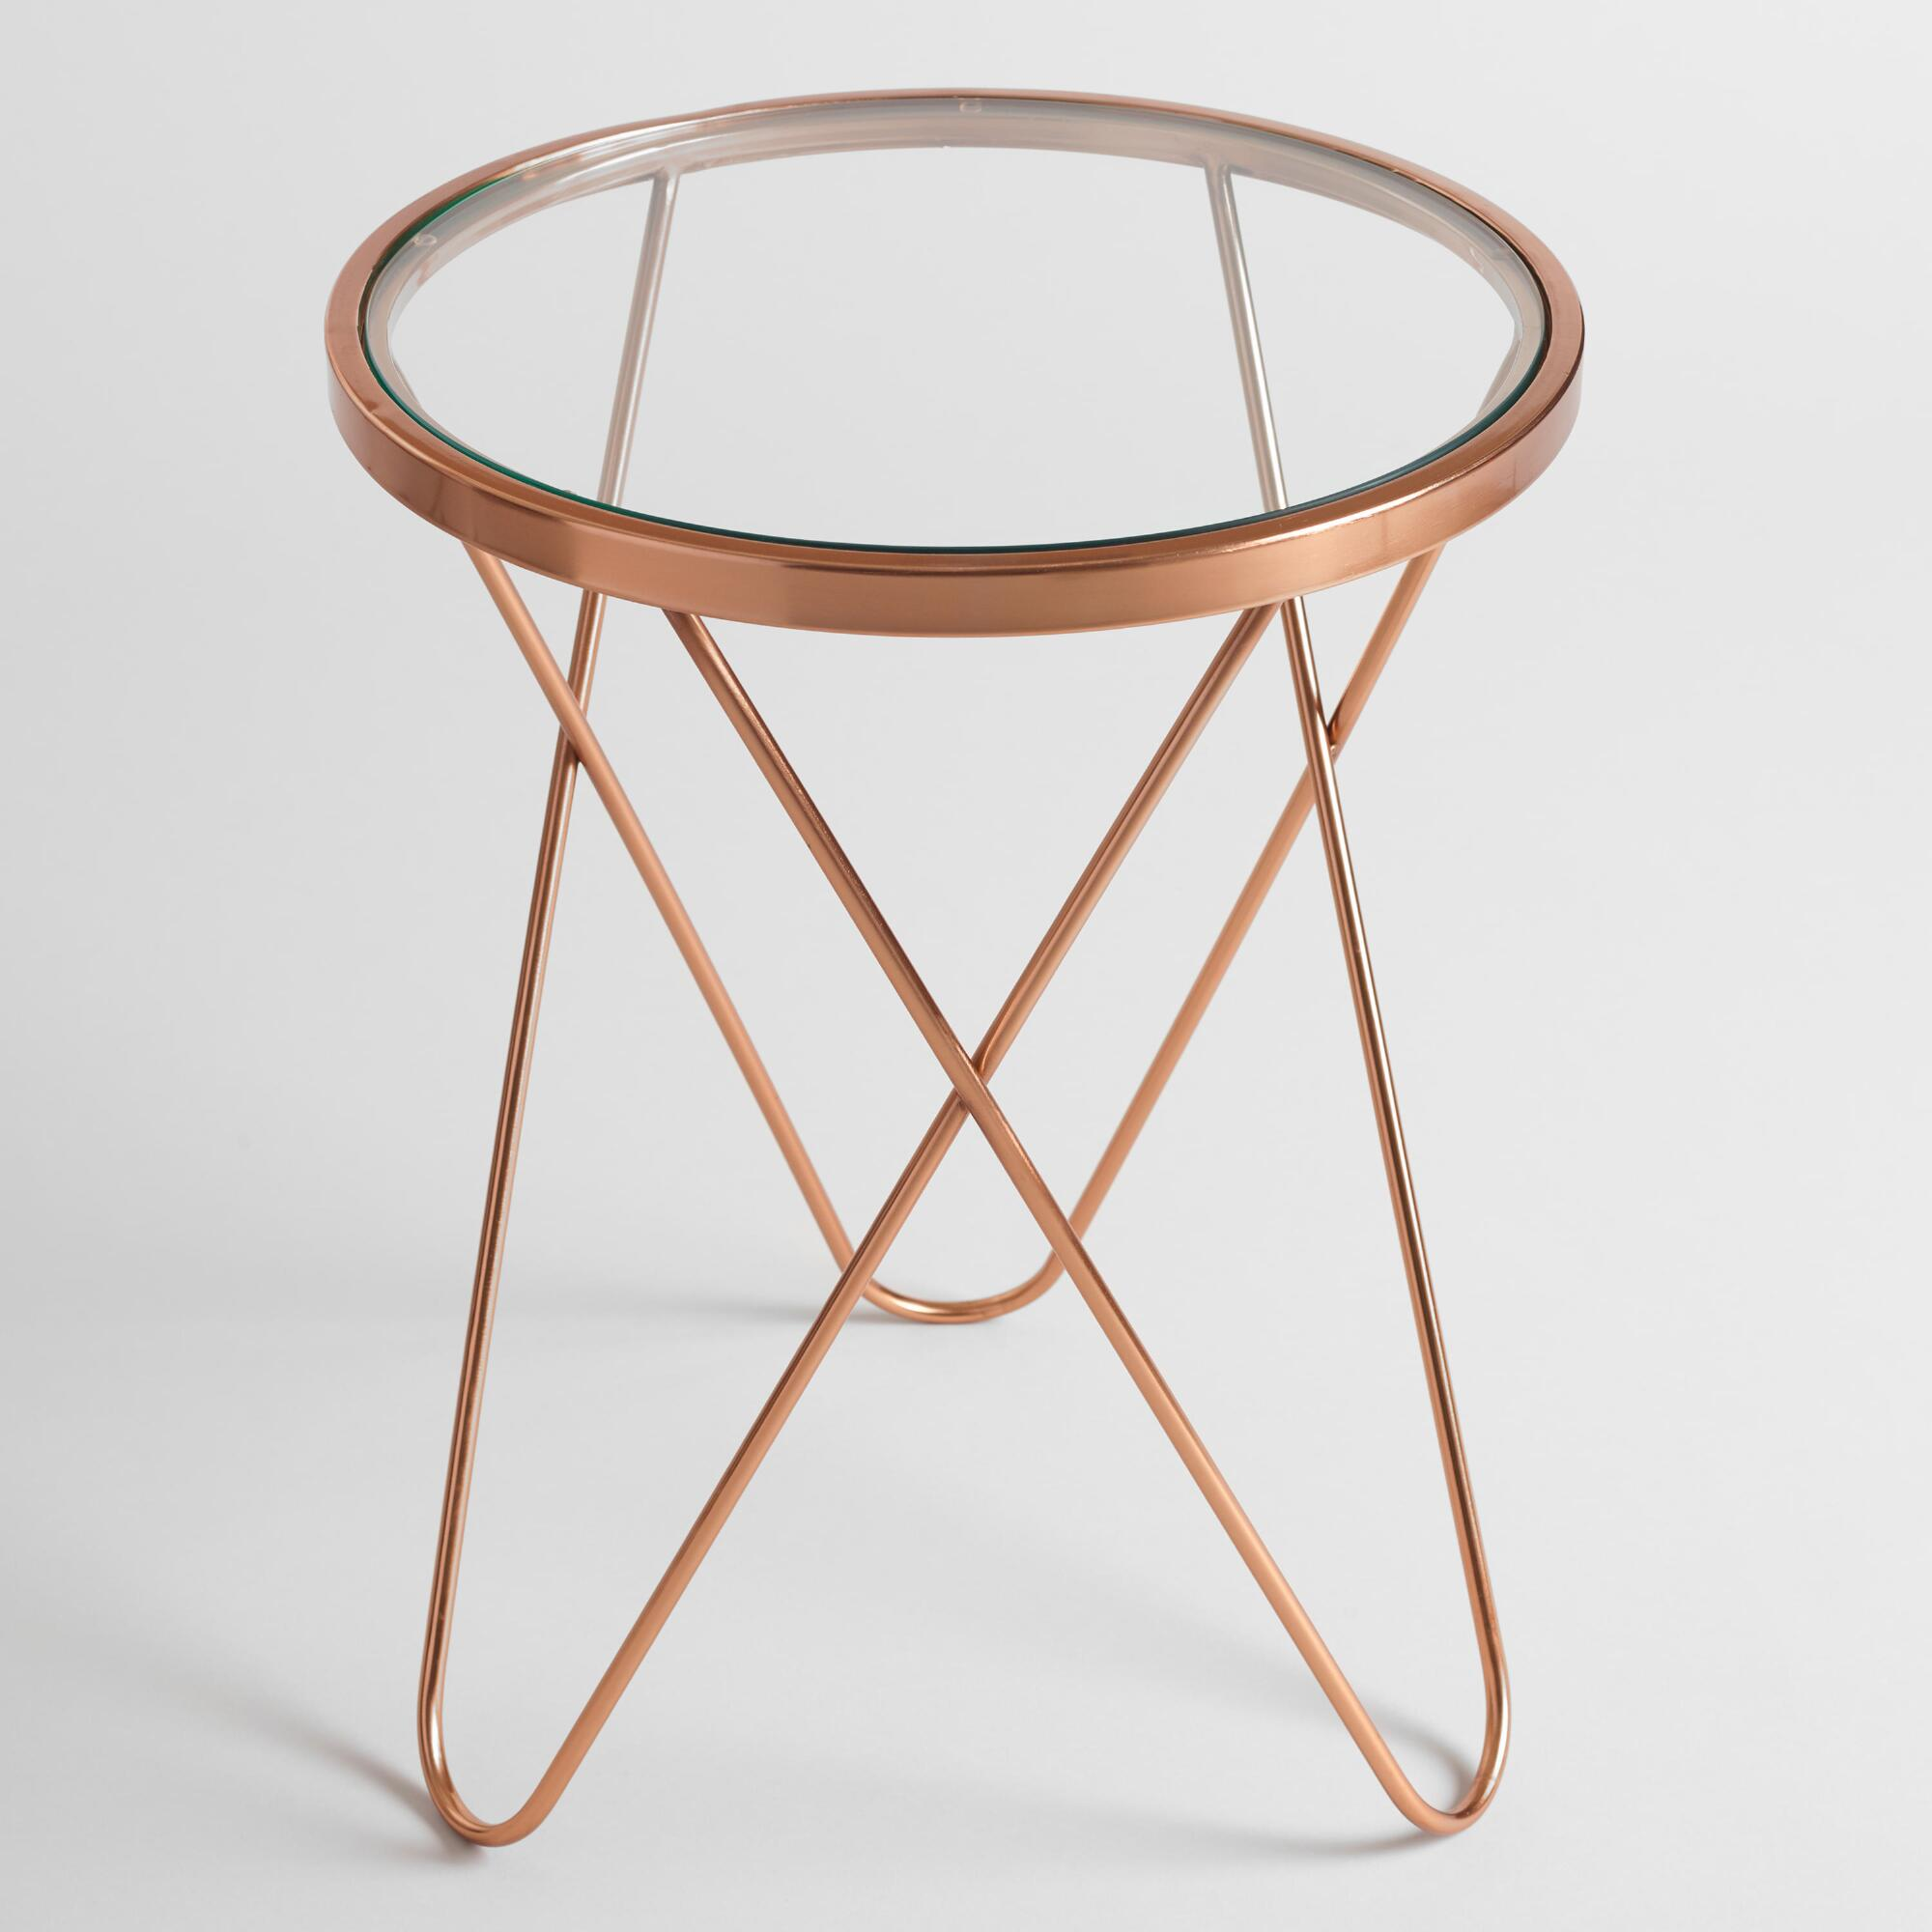 rose gold tomlin accent table with glass top world market iipsrv fcgi metal frame end best lamps solid wood nightstand seater dining center and side tables dinner ideas ikea round